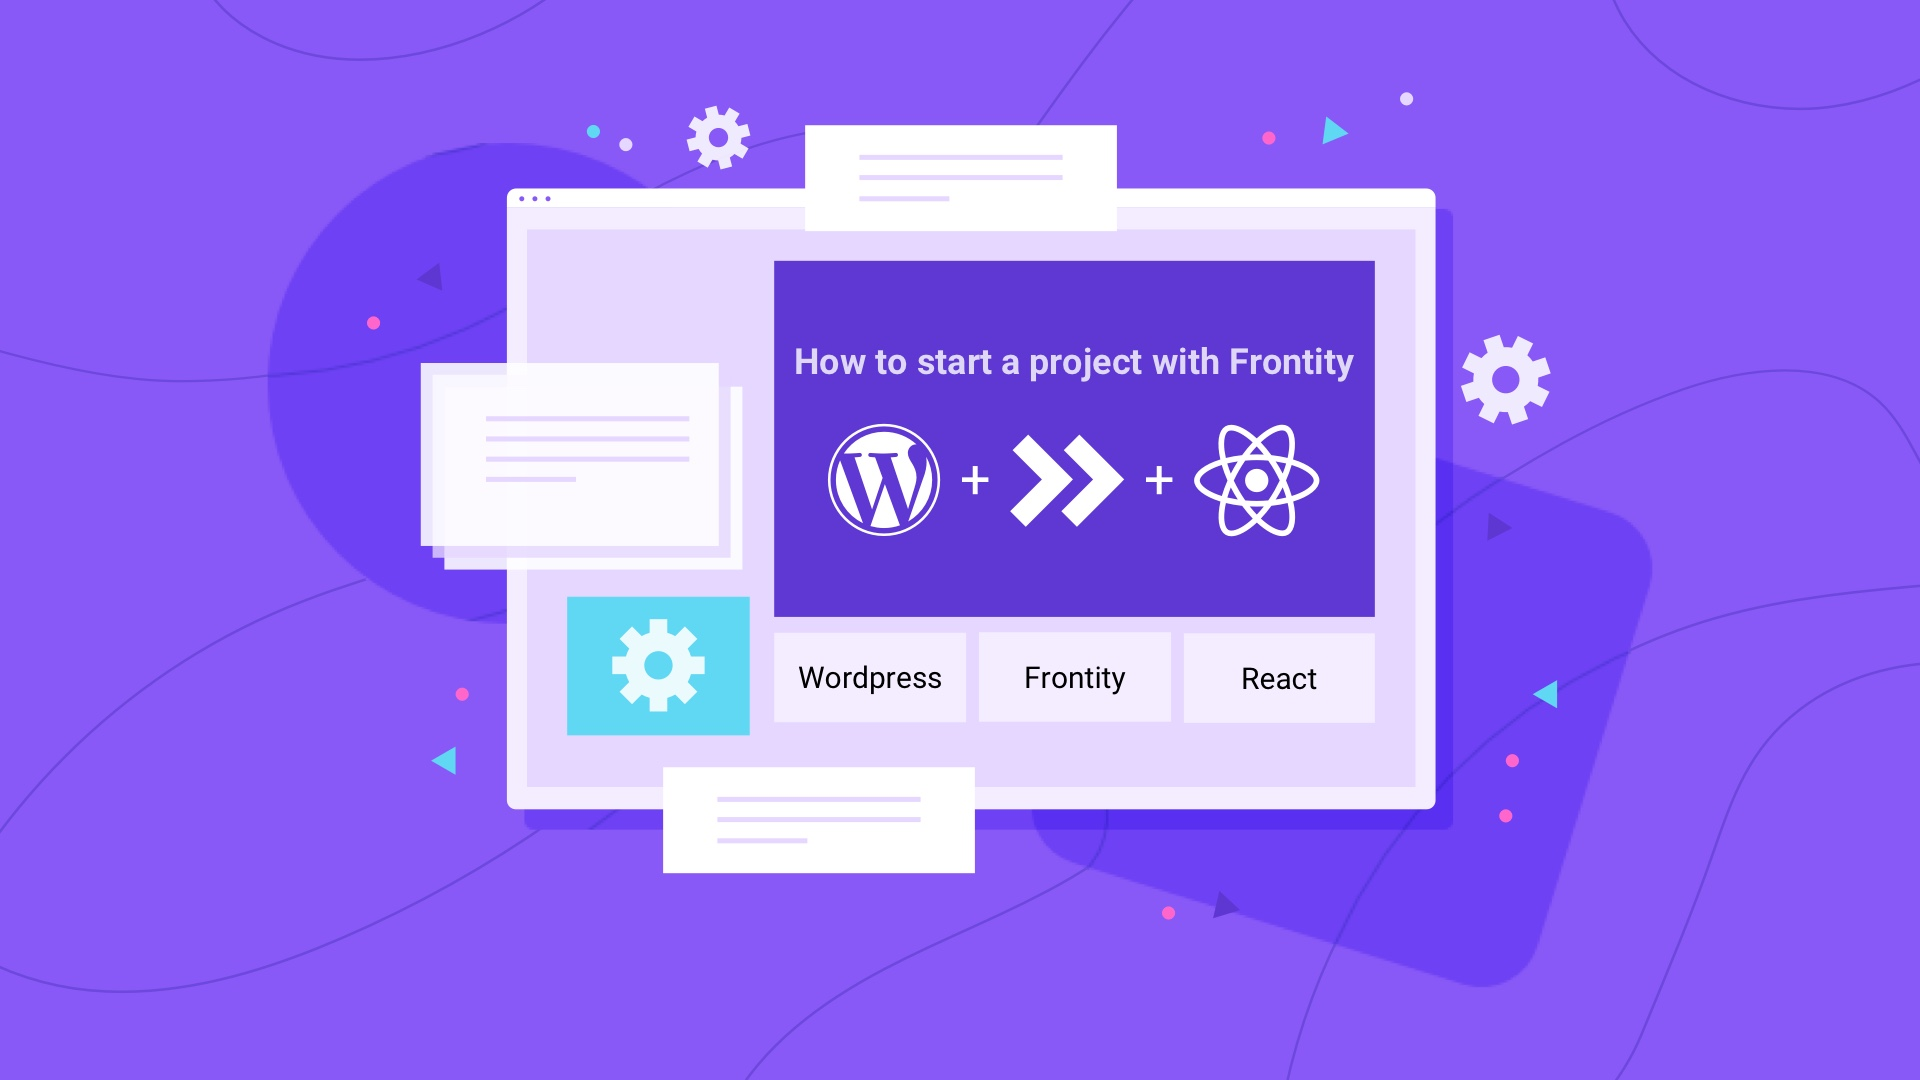 How to start a project with Frontity